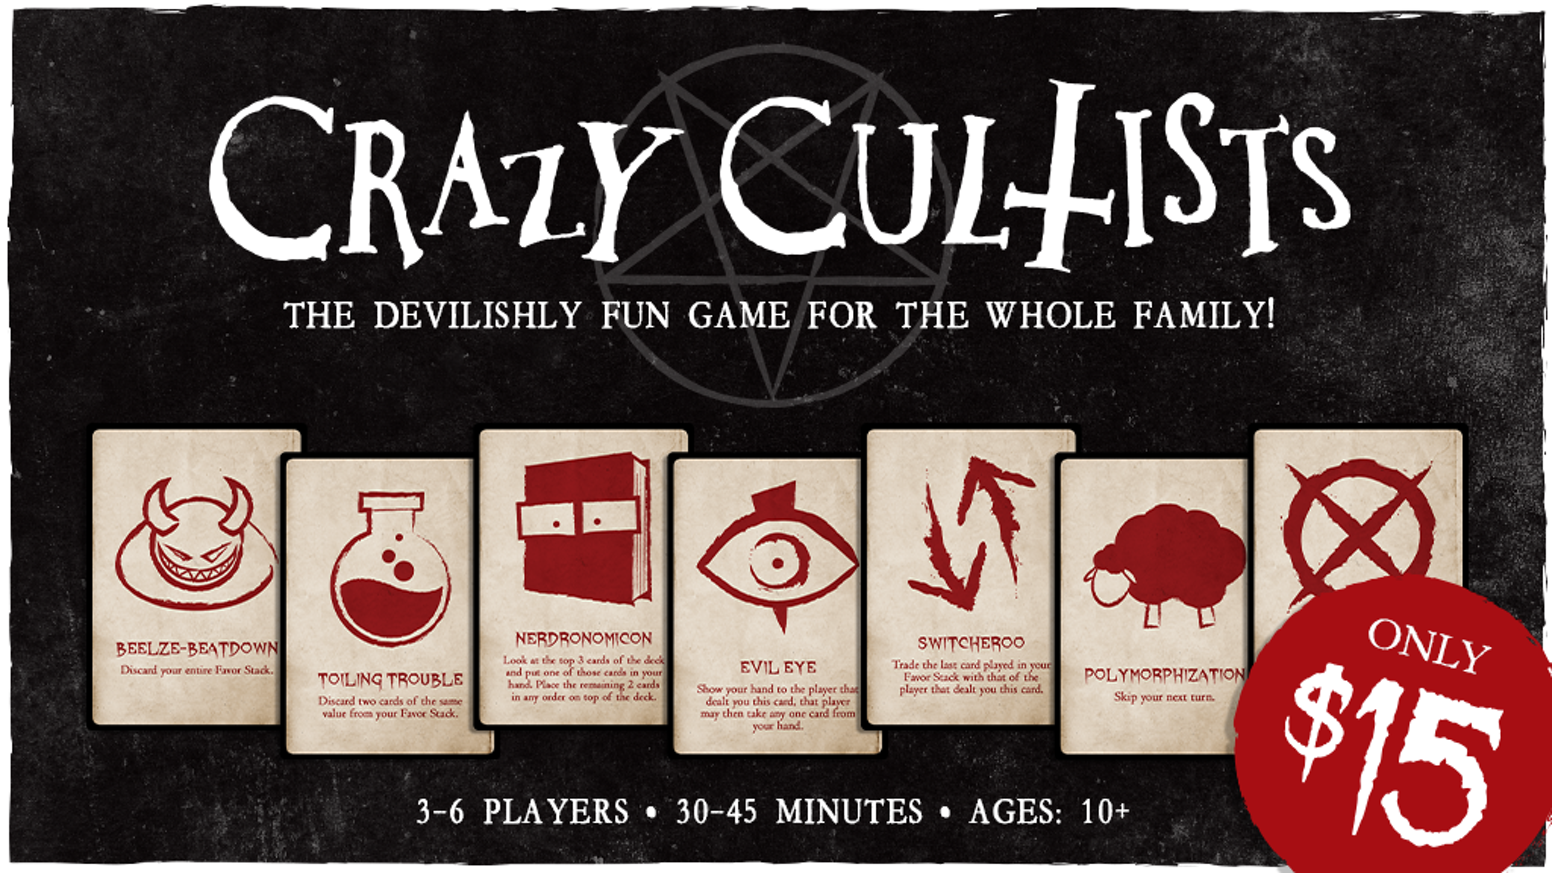 Crazy Cultists: The Devilishly Fun Game For The Whole Family